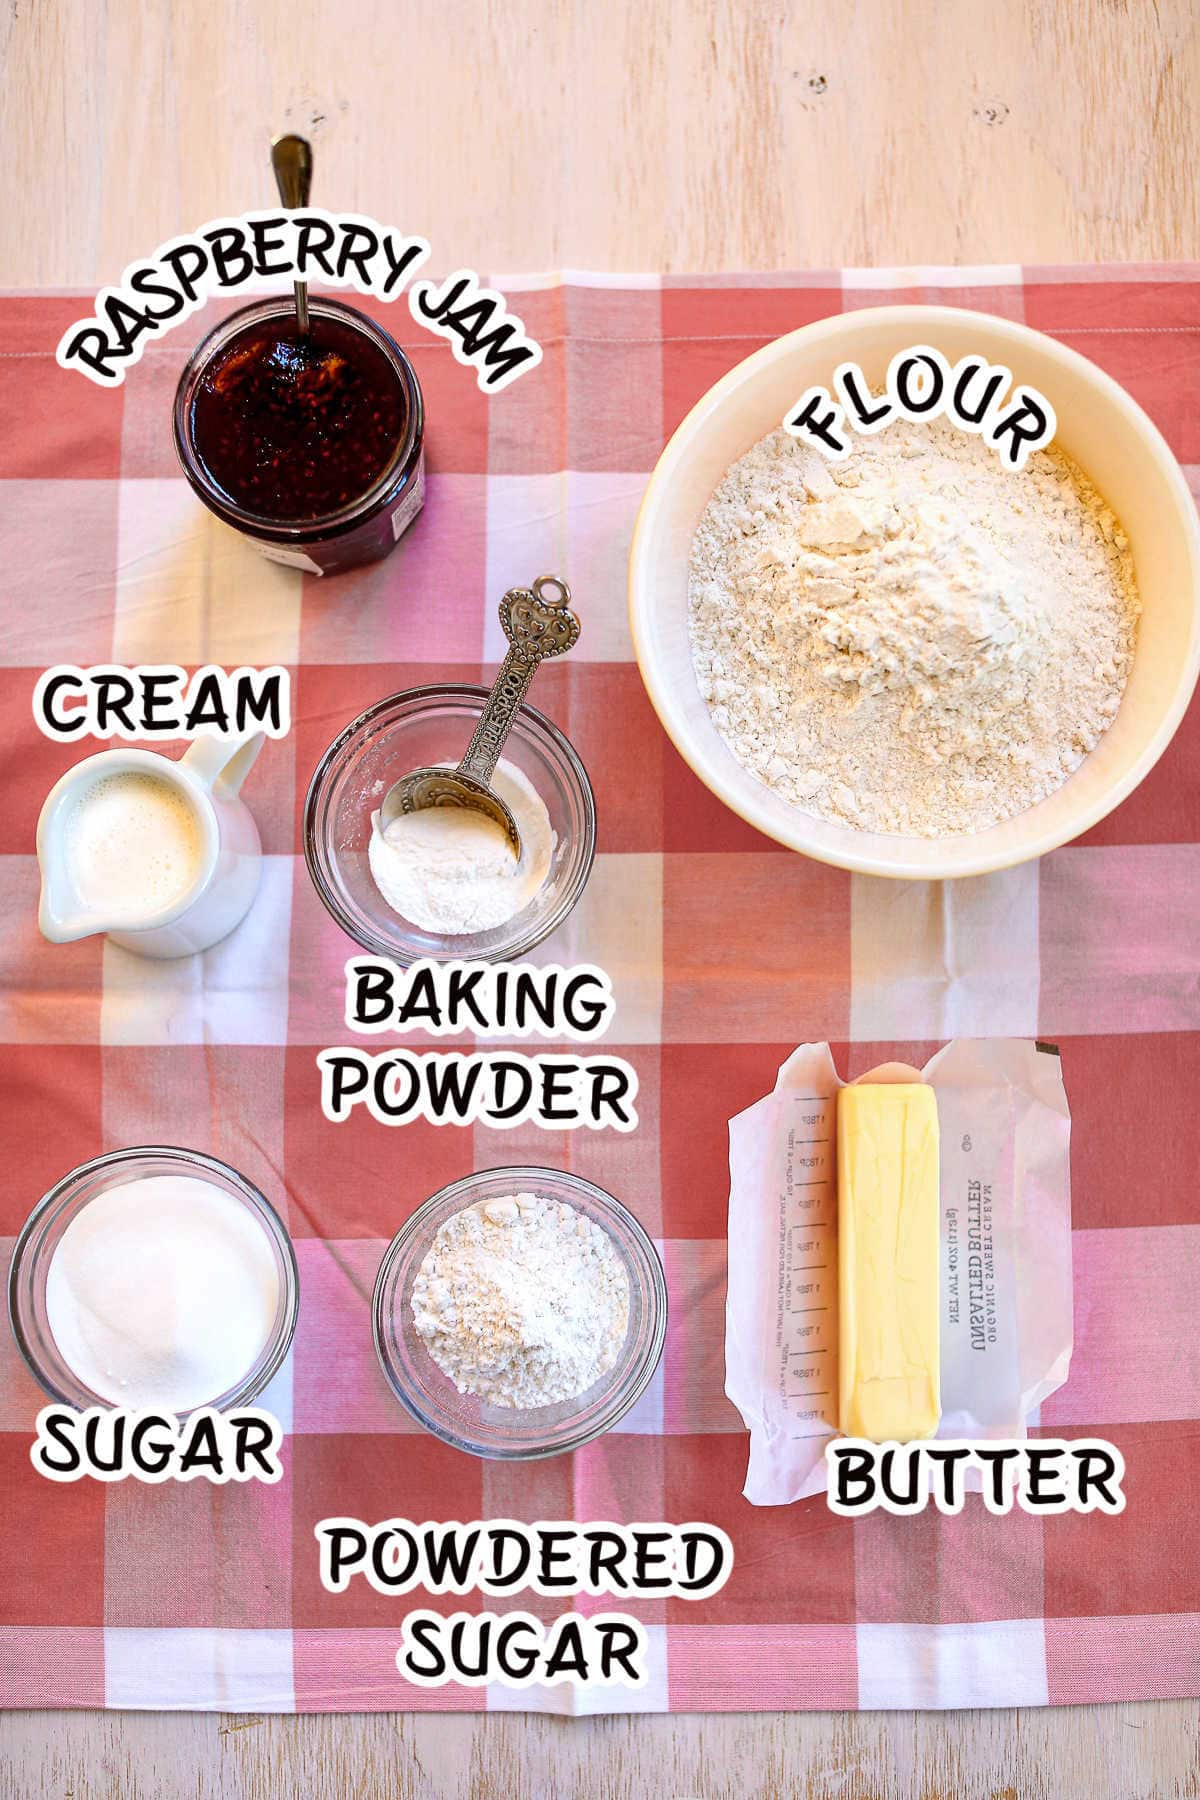 Labeled ingredients for raspberry thumbprint scones.